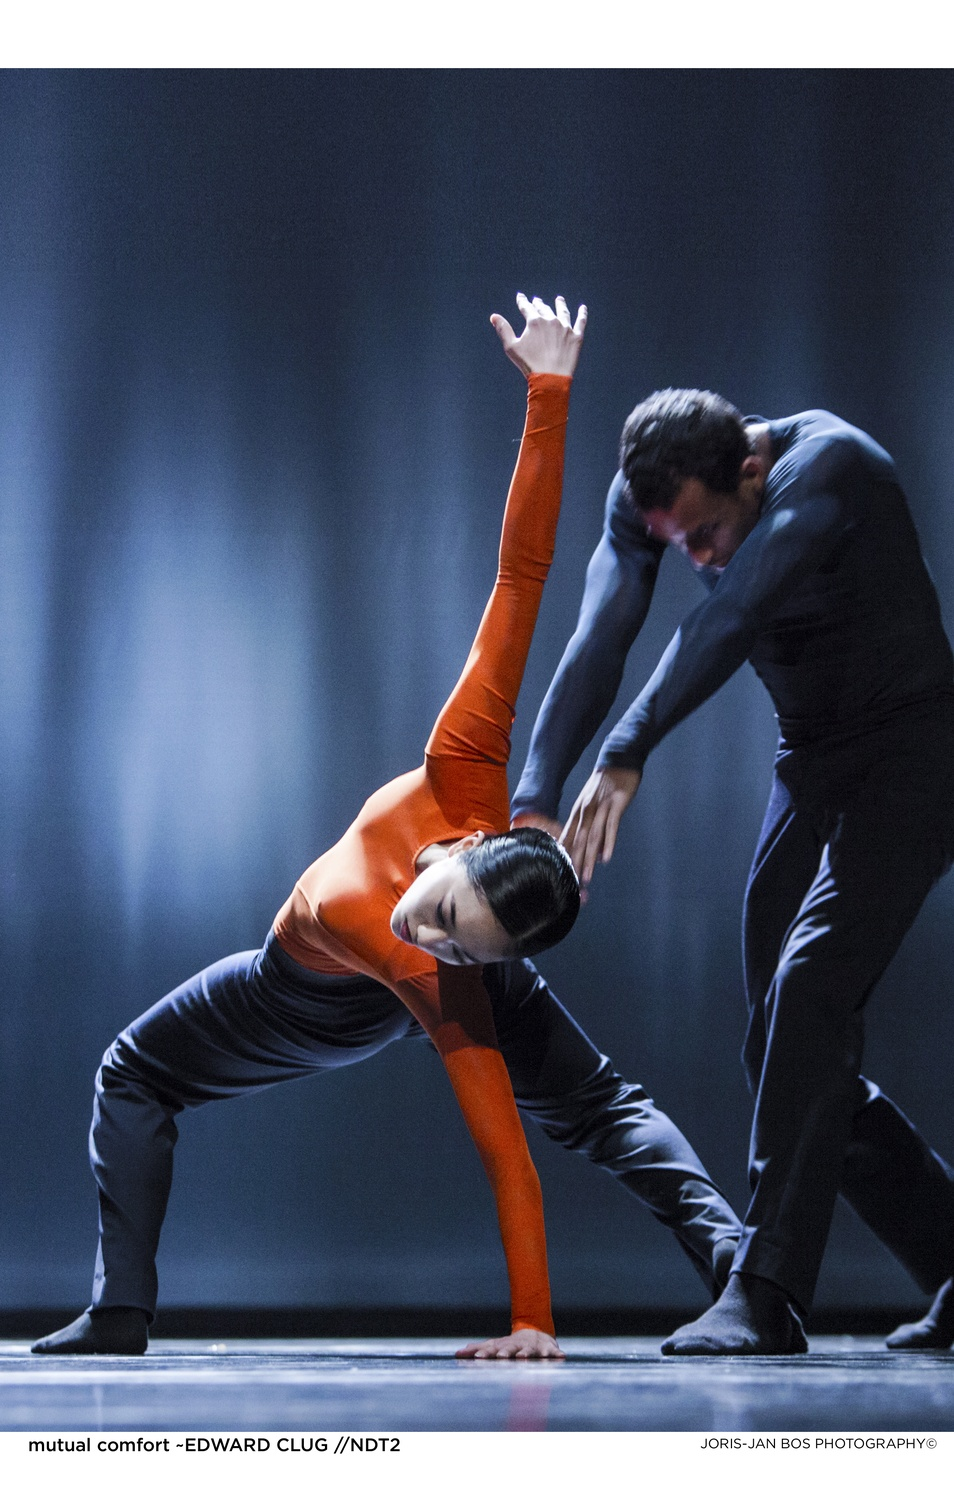 Still of 'mutual comfort' performance by Nederlands Theater Dance 2 .